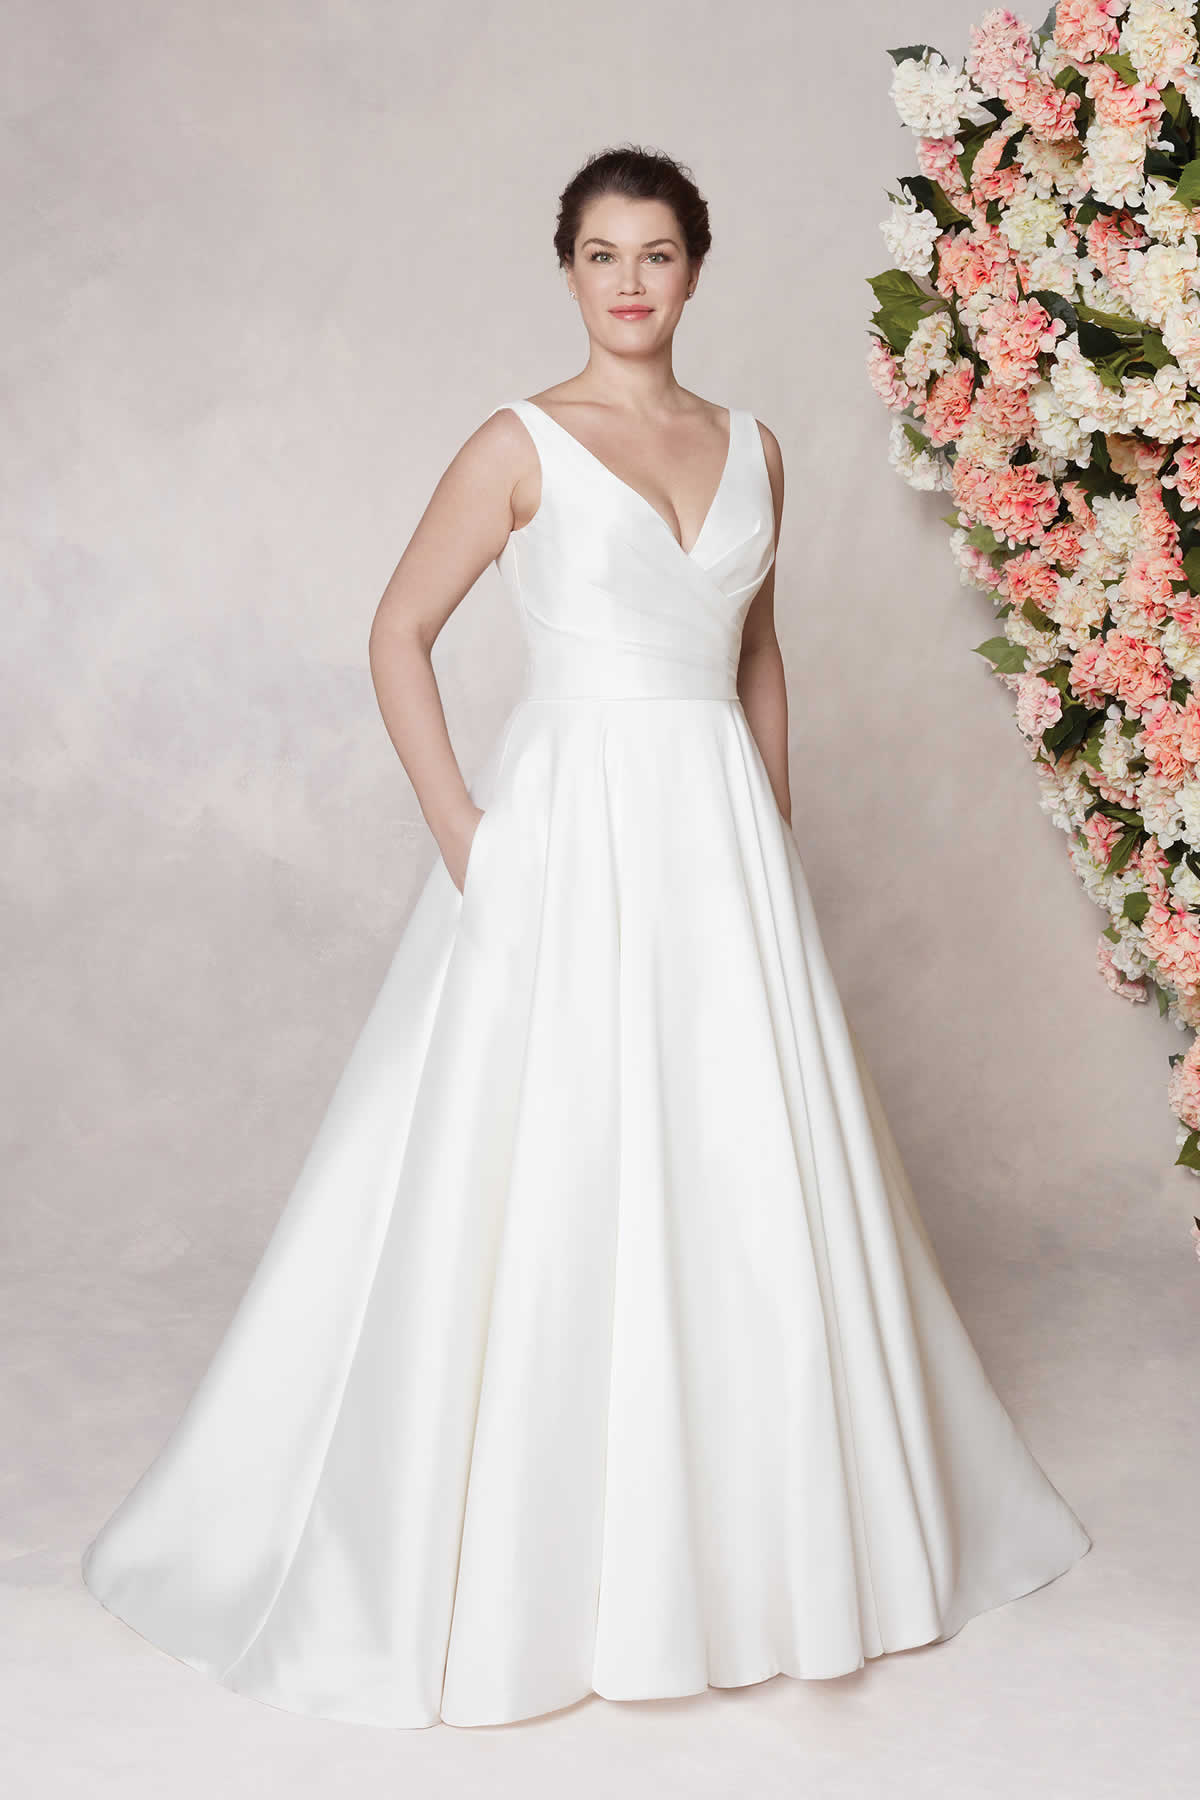 44080-PS-Sincerity Bridal